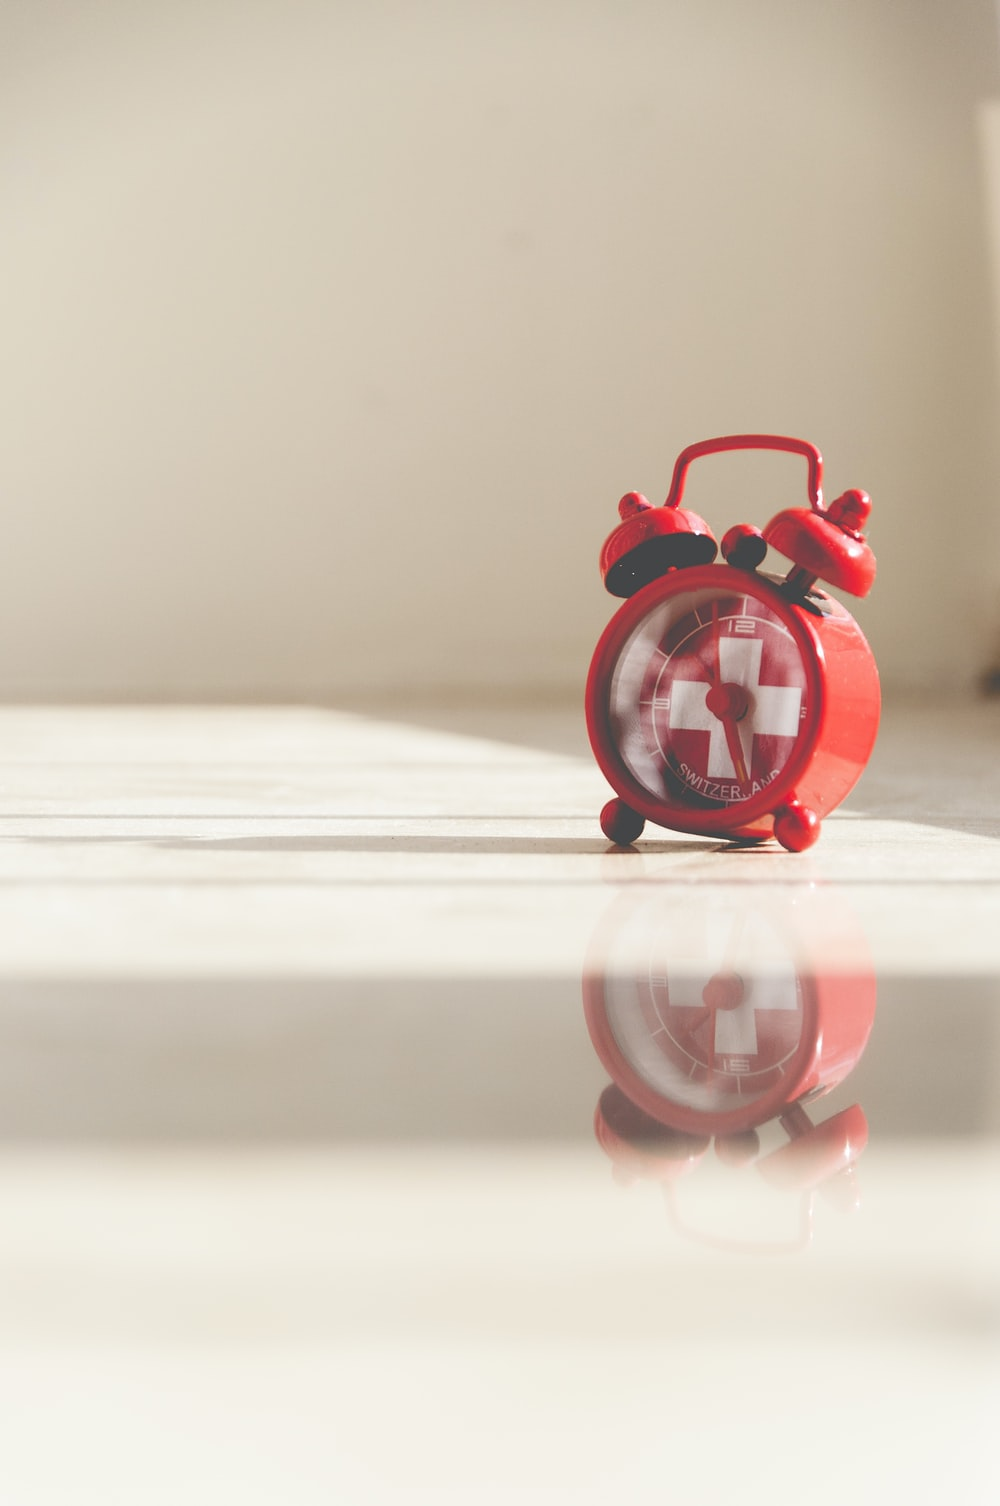 red twin bell alarm clock